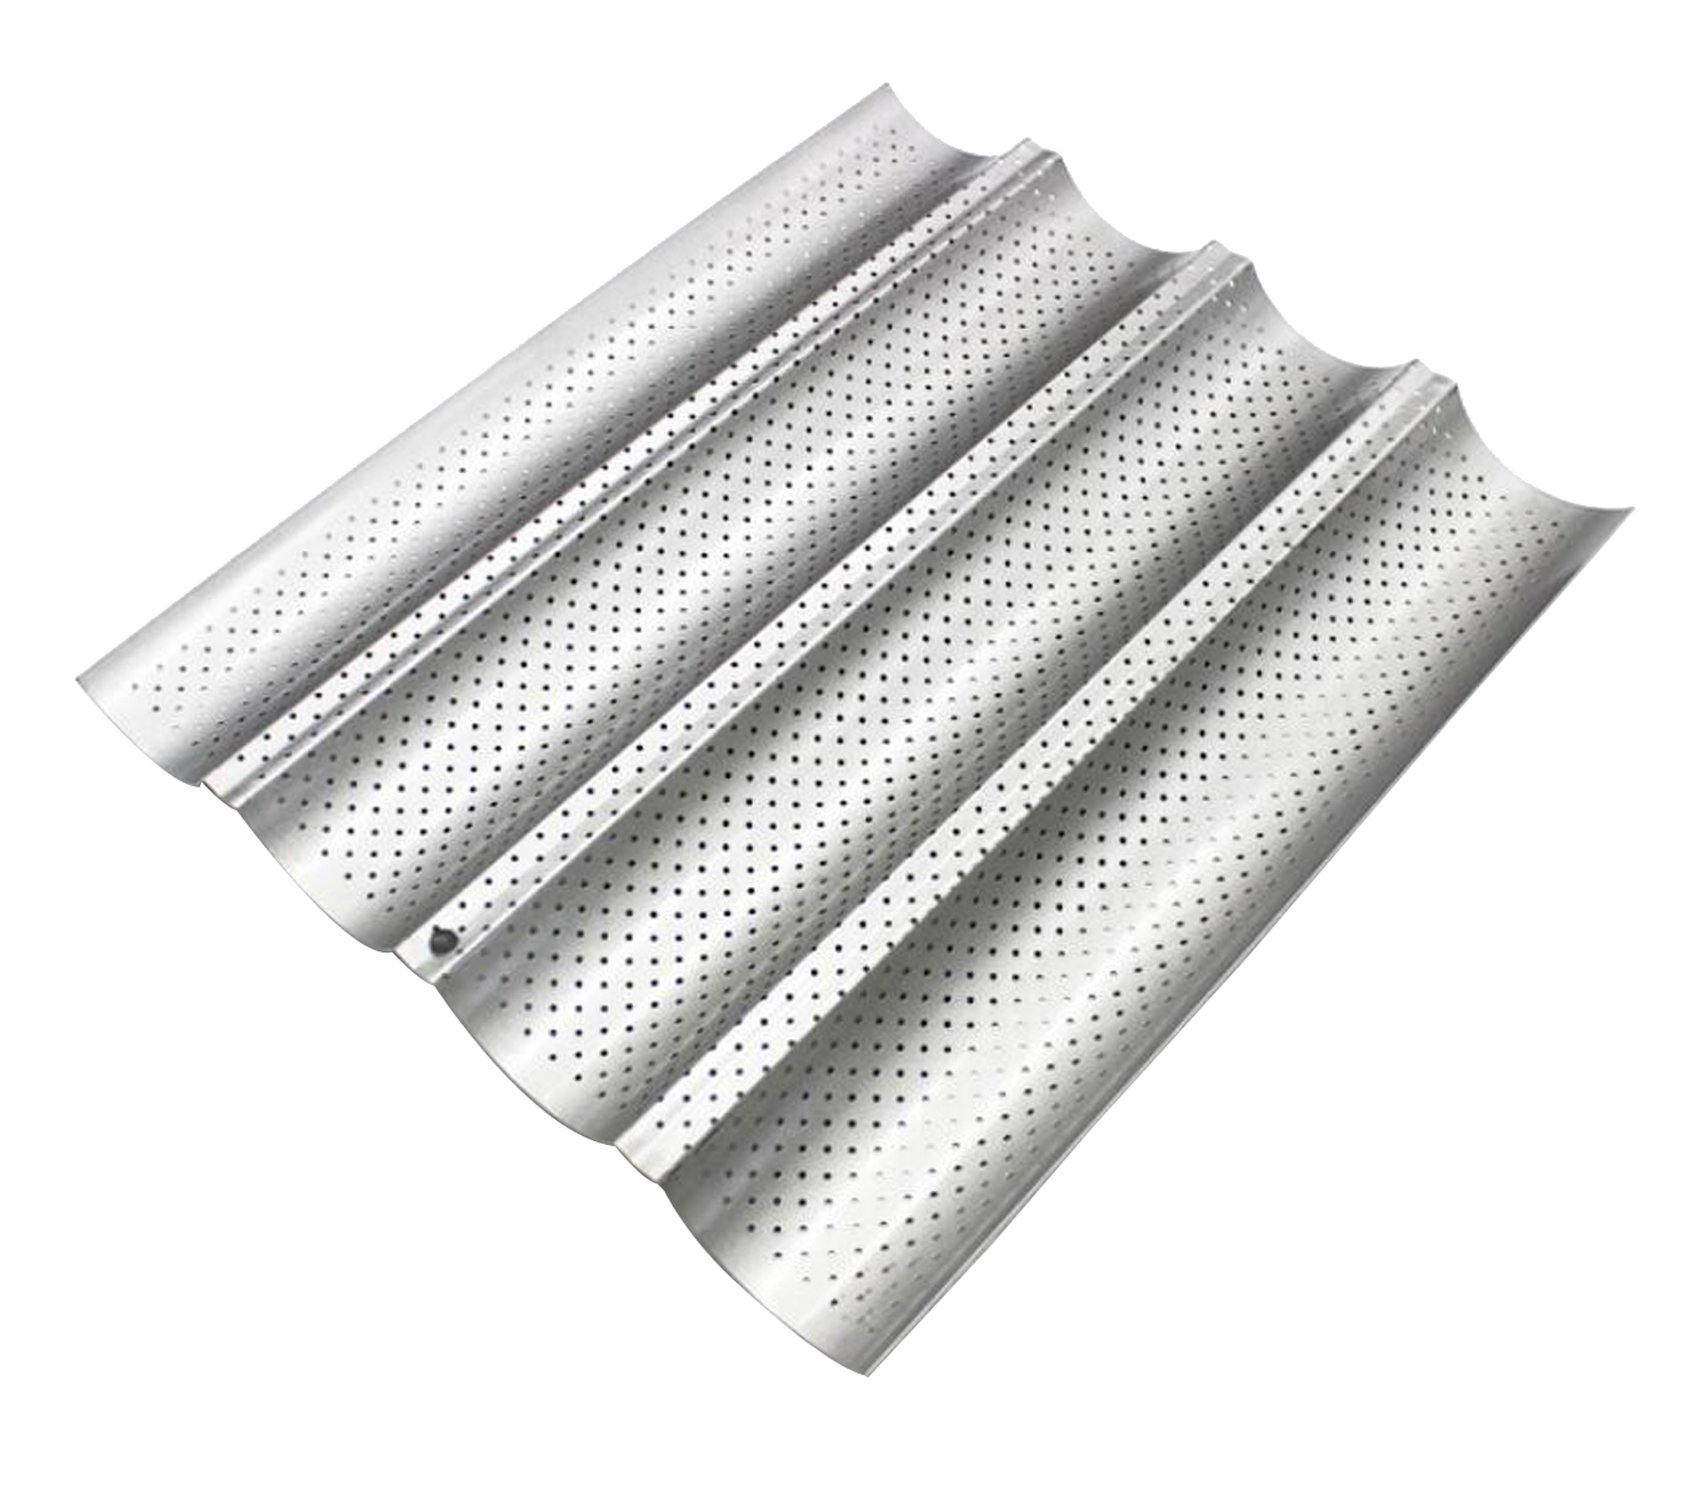 Four Groove French Bread Pan, KOOTIPS Non-stick Perforated Baguette Pan French Italian Bread Pan Wave Loaf Bake Mold Board Subway Mold Tins Basket Tray Cloche Molds Pans Sheet Baker Baking (Silver)